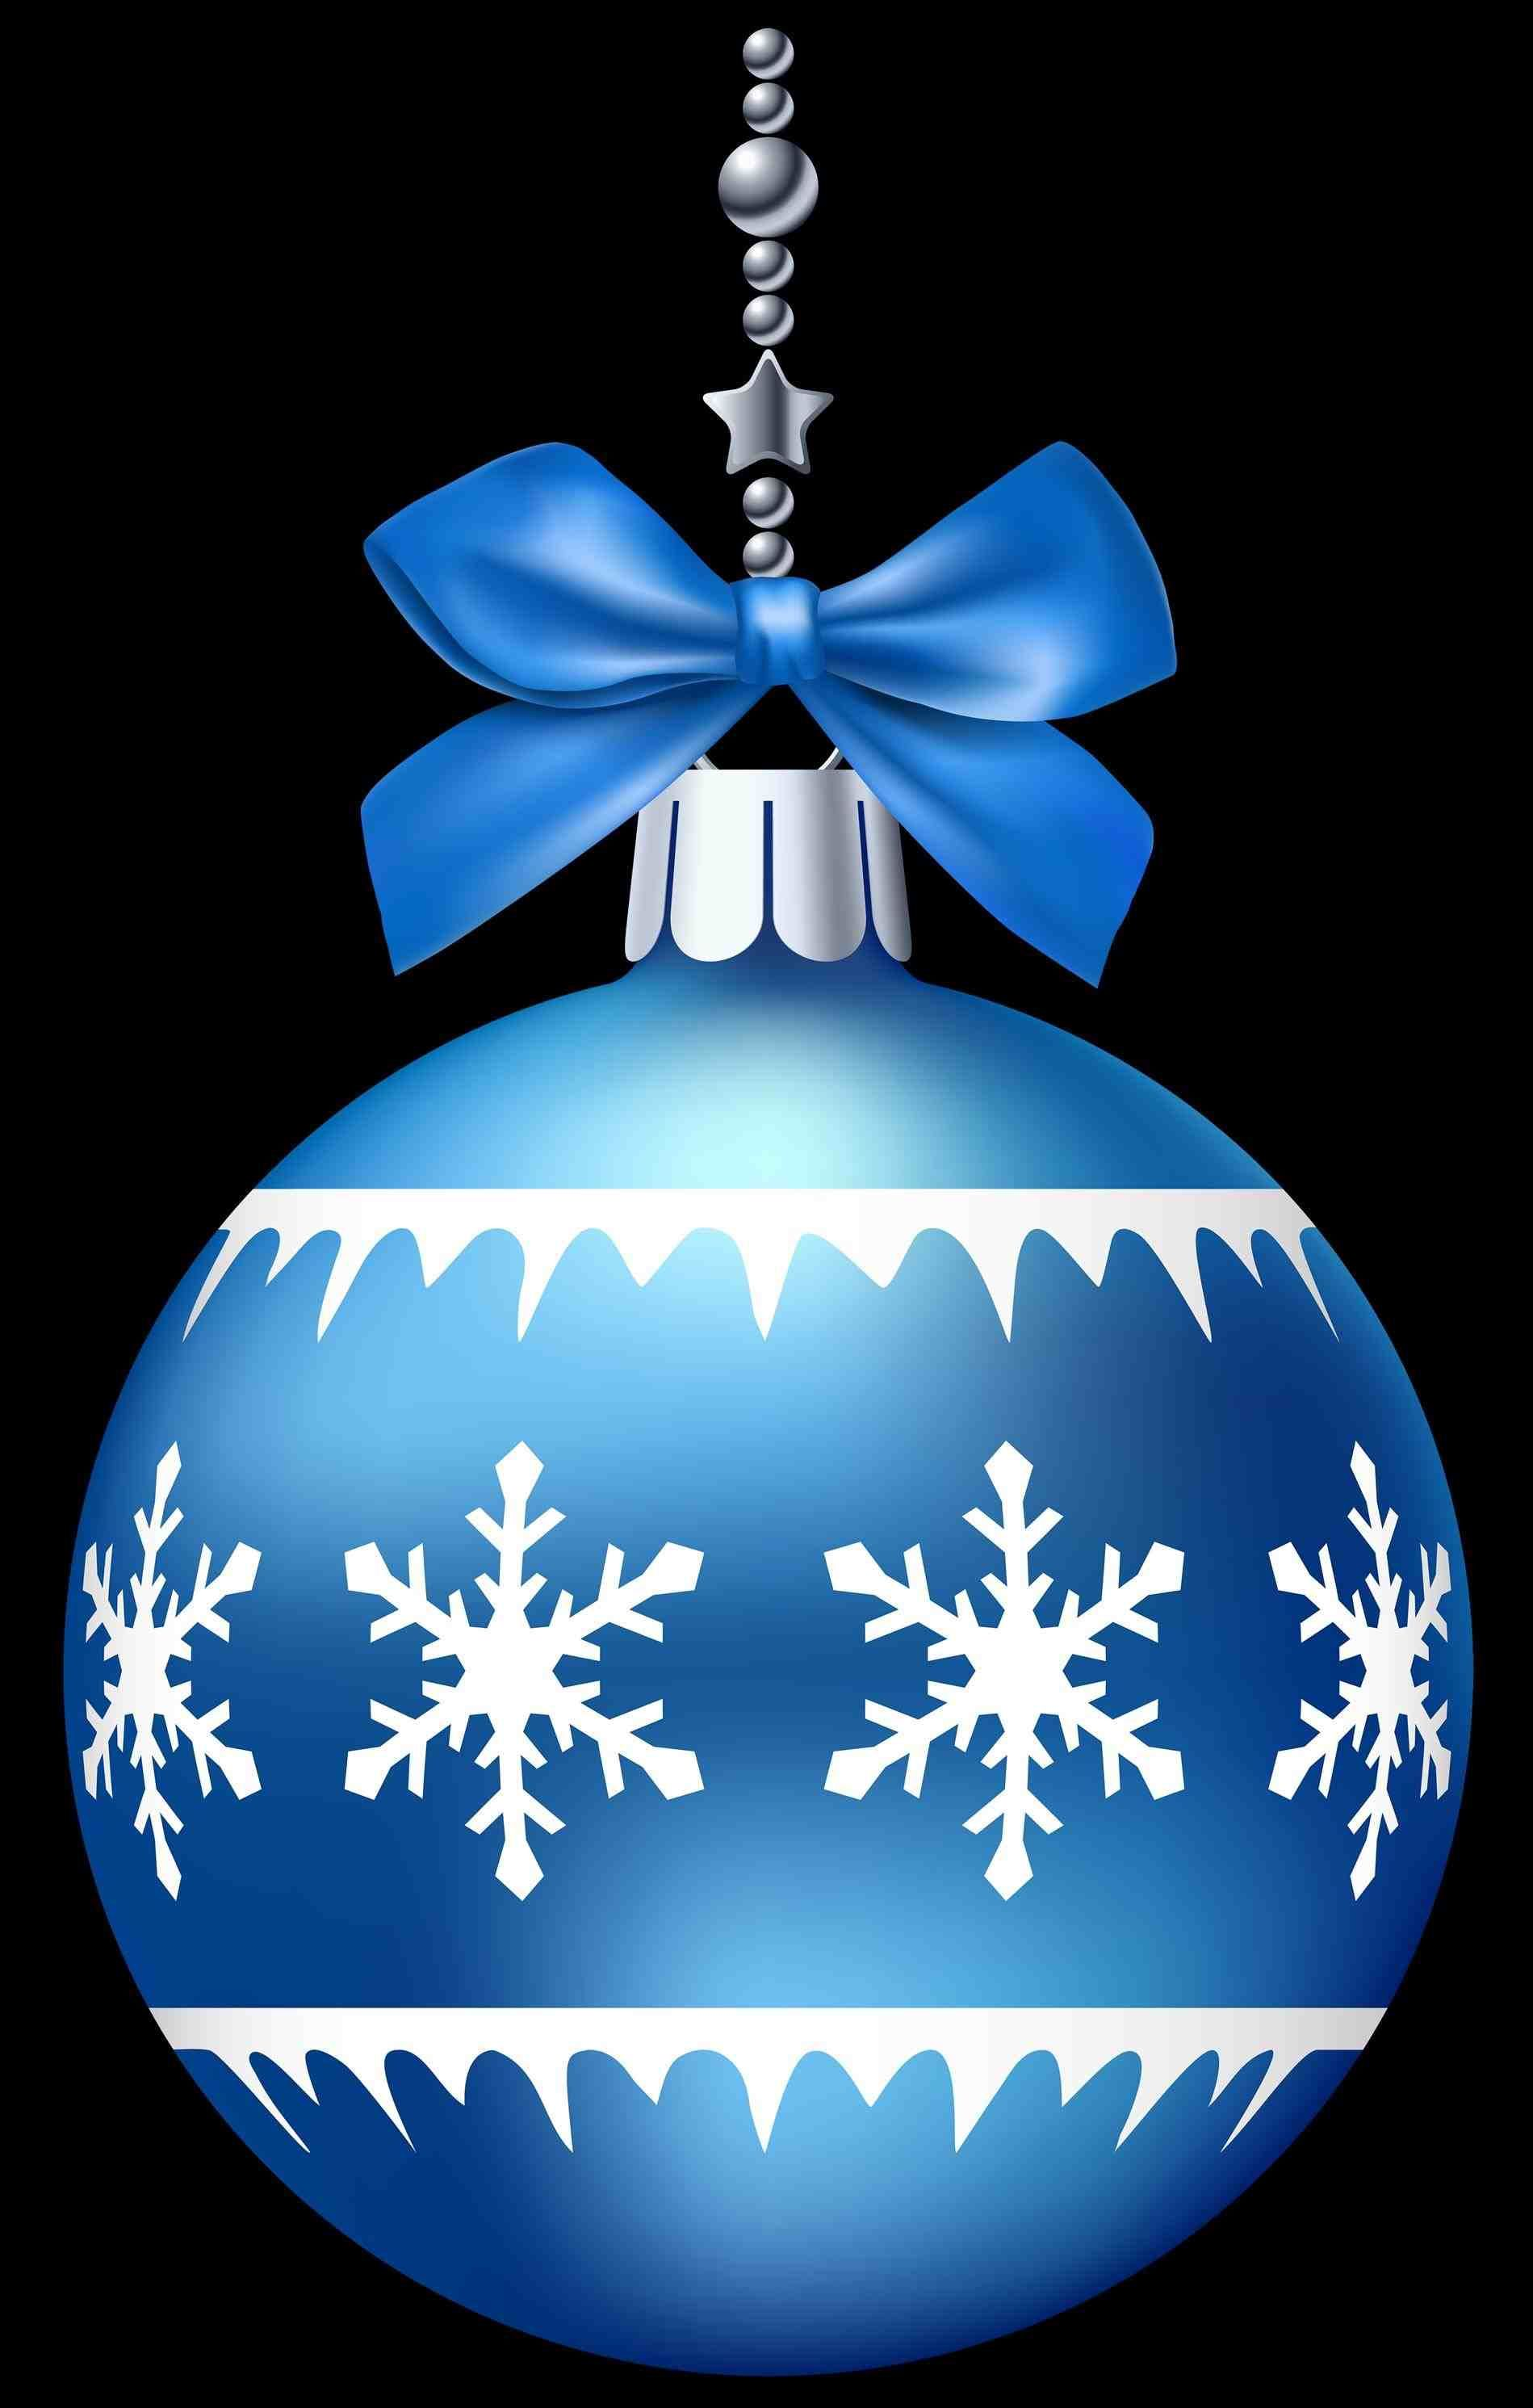 New Post christmas ornaments images clip art | xmast | Pinterest ...